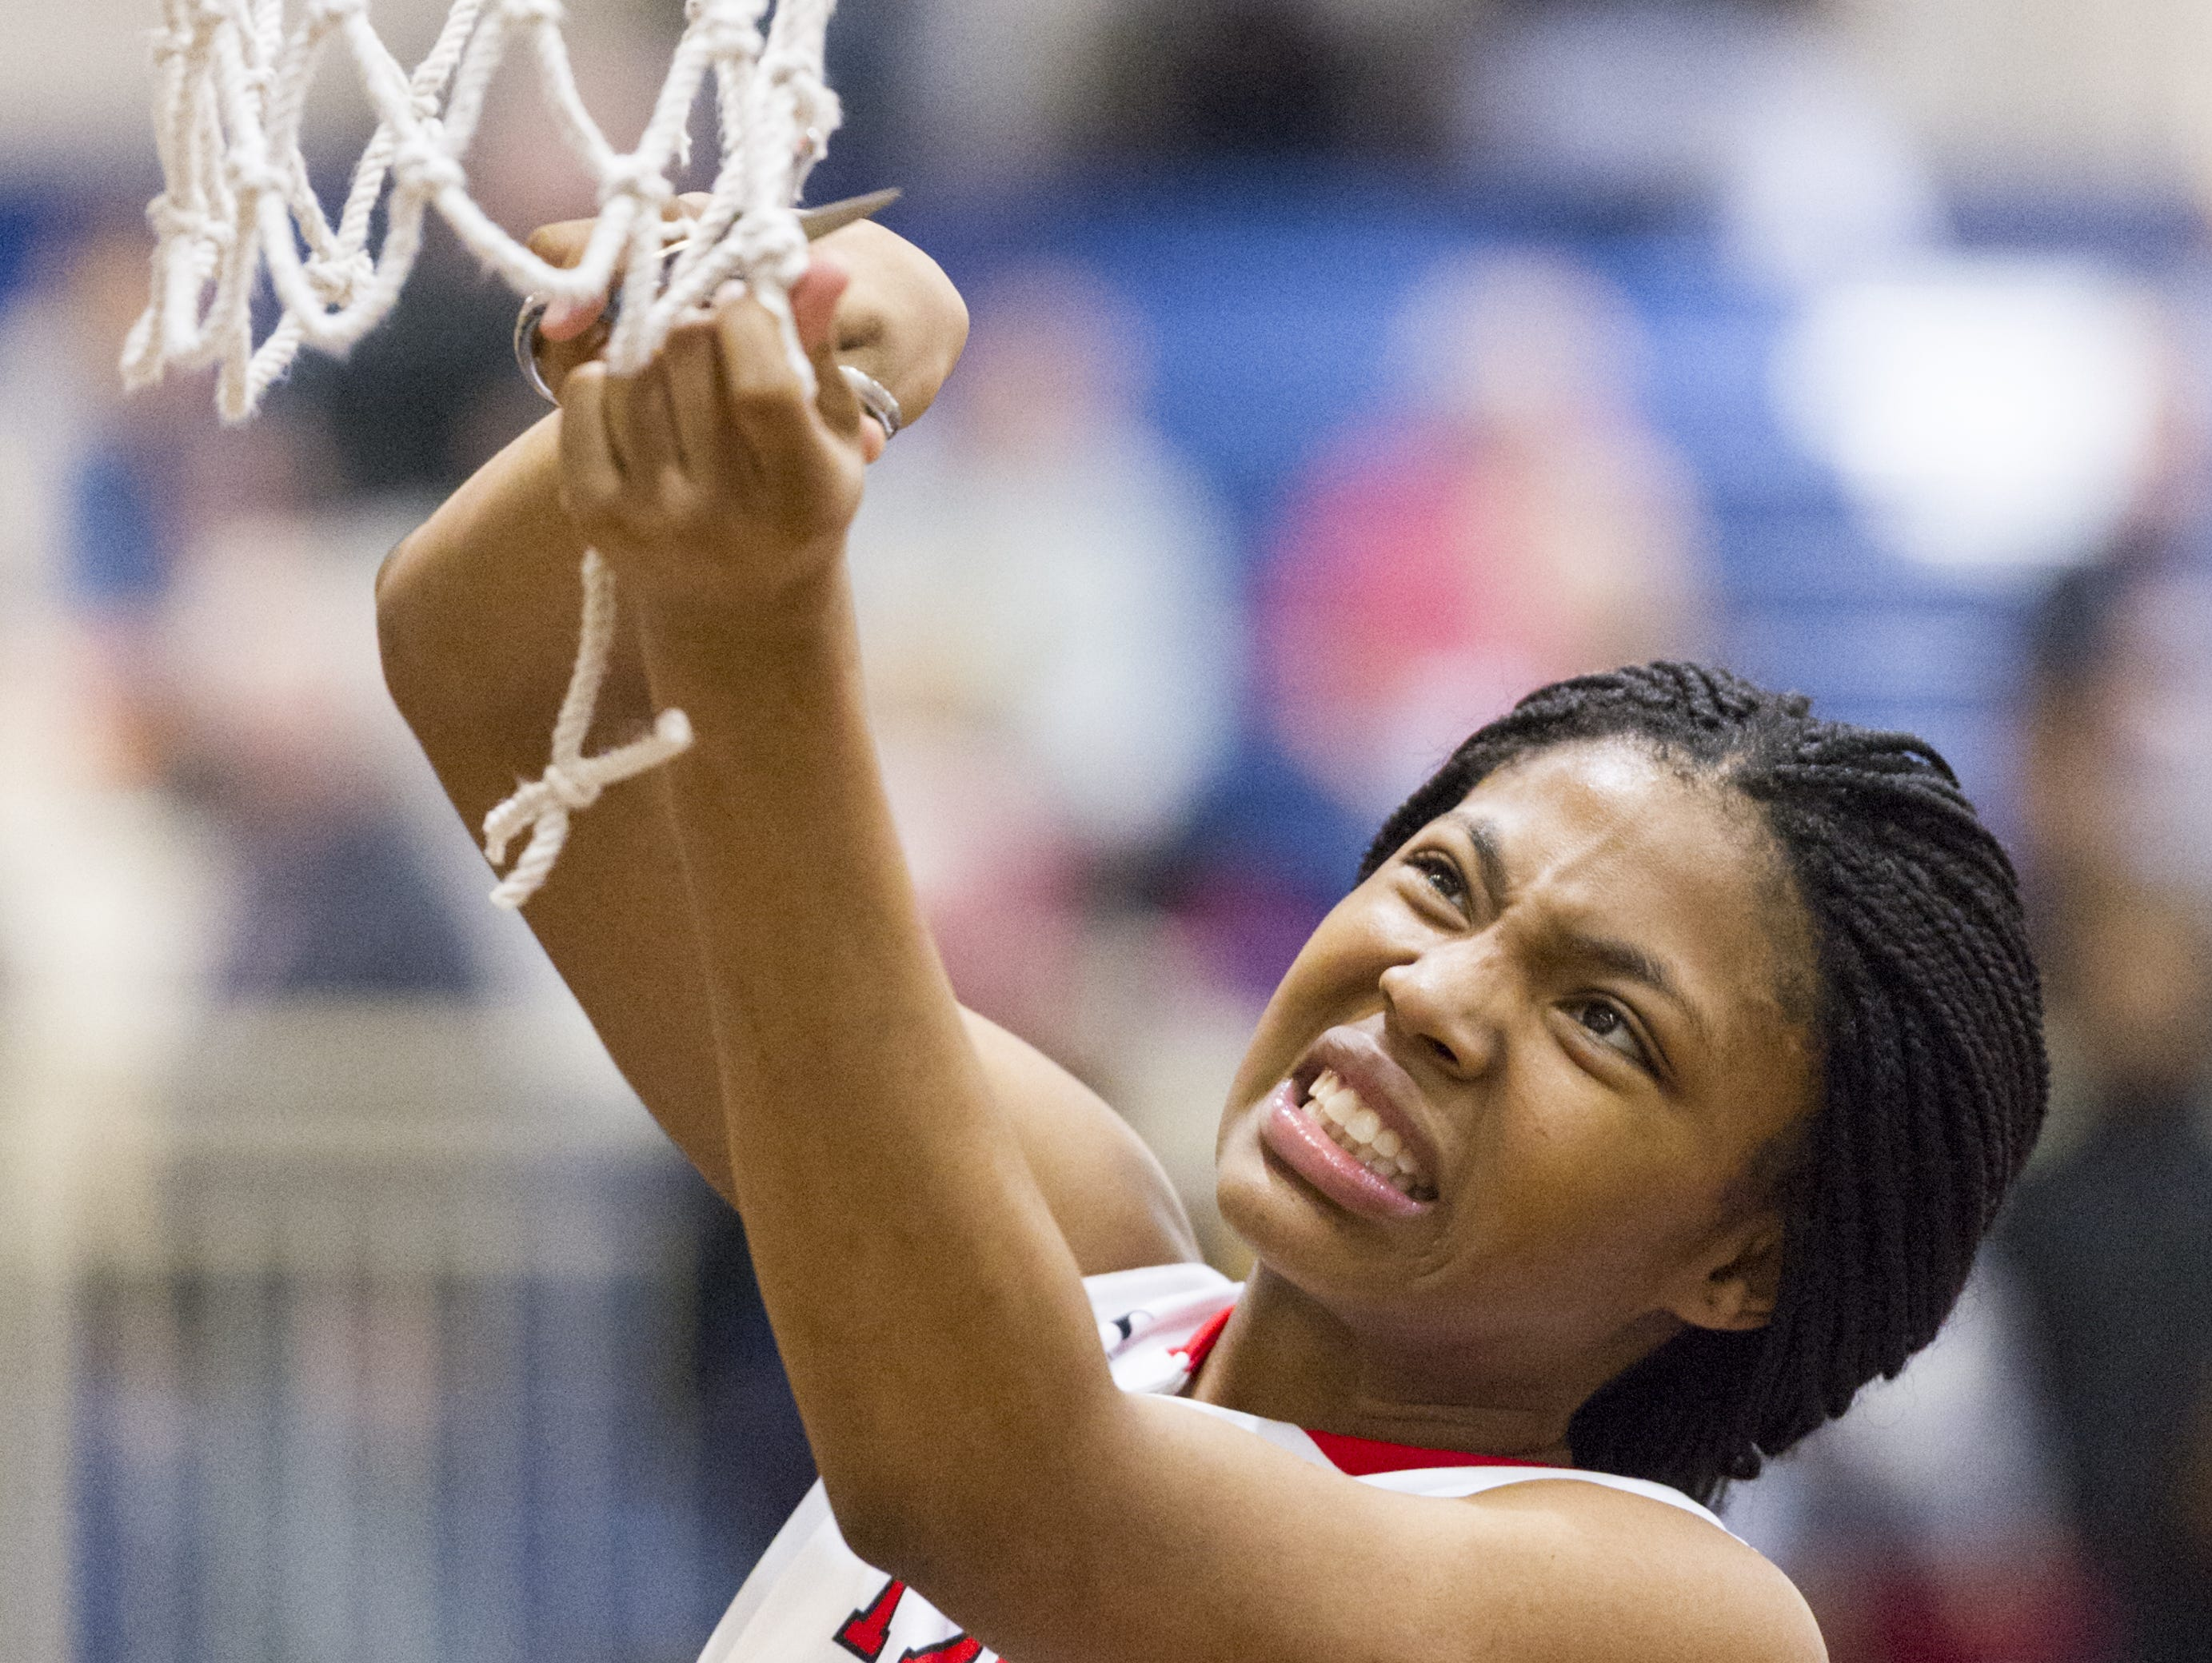 Pike High School junior Angel Baker (15) grimaces as she struggles to cut down a piece of the game net after winning the IHSAA 4A Girls' Basketball Tournament Regional championship game, Saturday, Feb. 11, 2017, at Decatur Central High School. Pike won in overtime, 61-59.